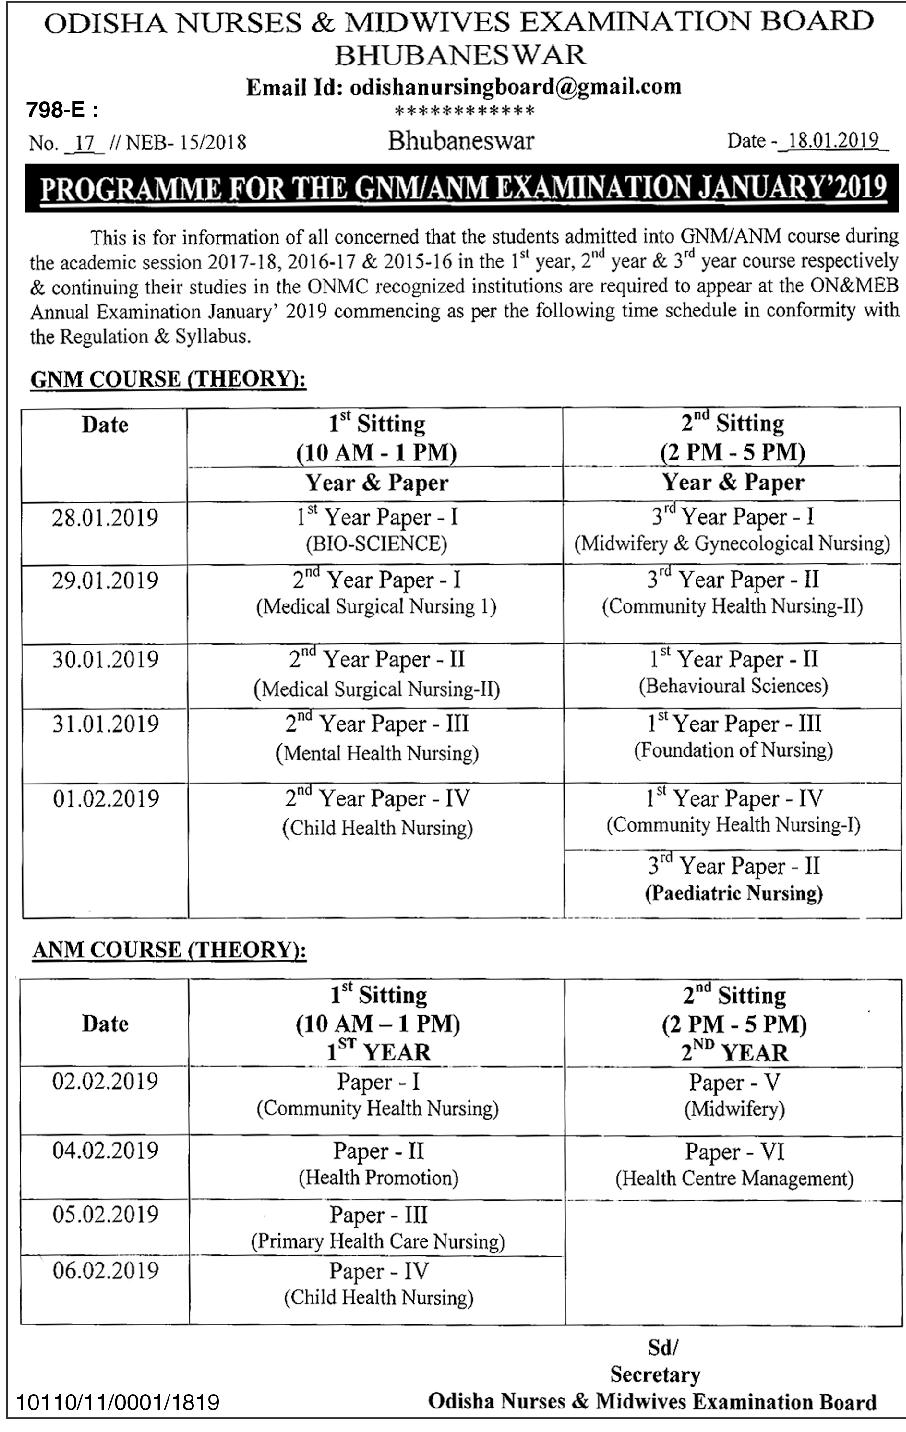 Odisha ON&MEB Programme/Time Table for the GNM/ANM